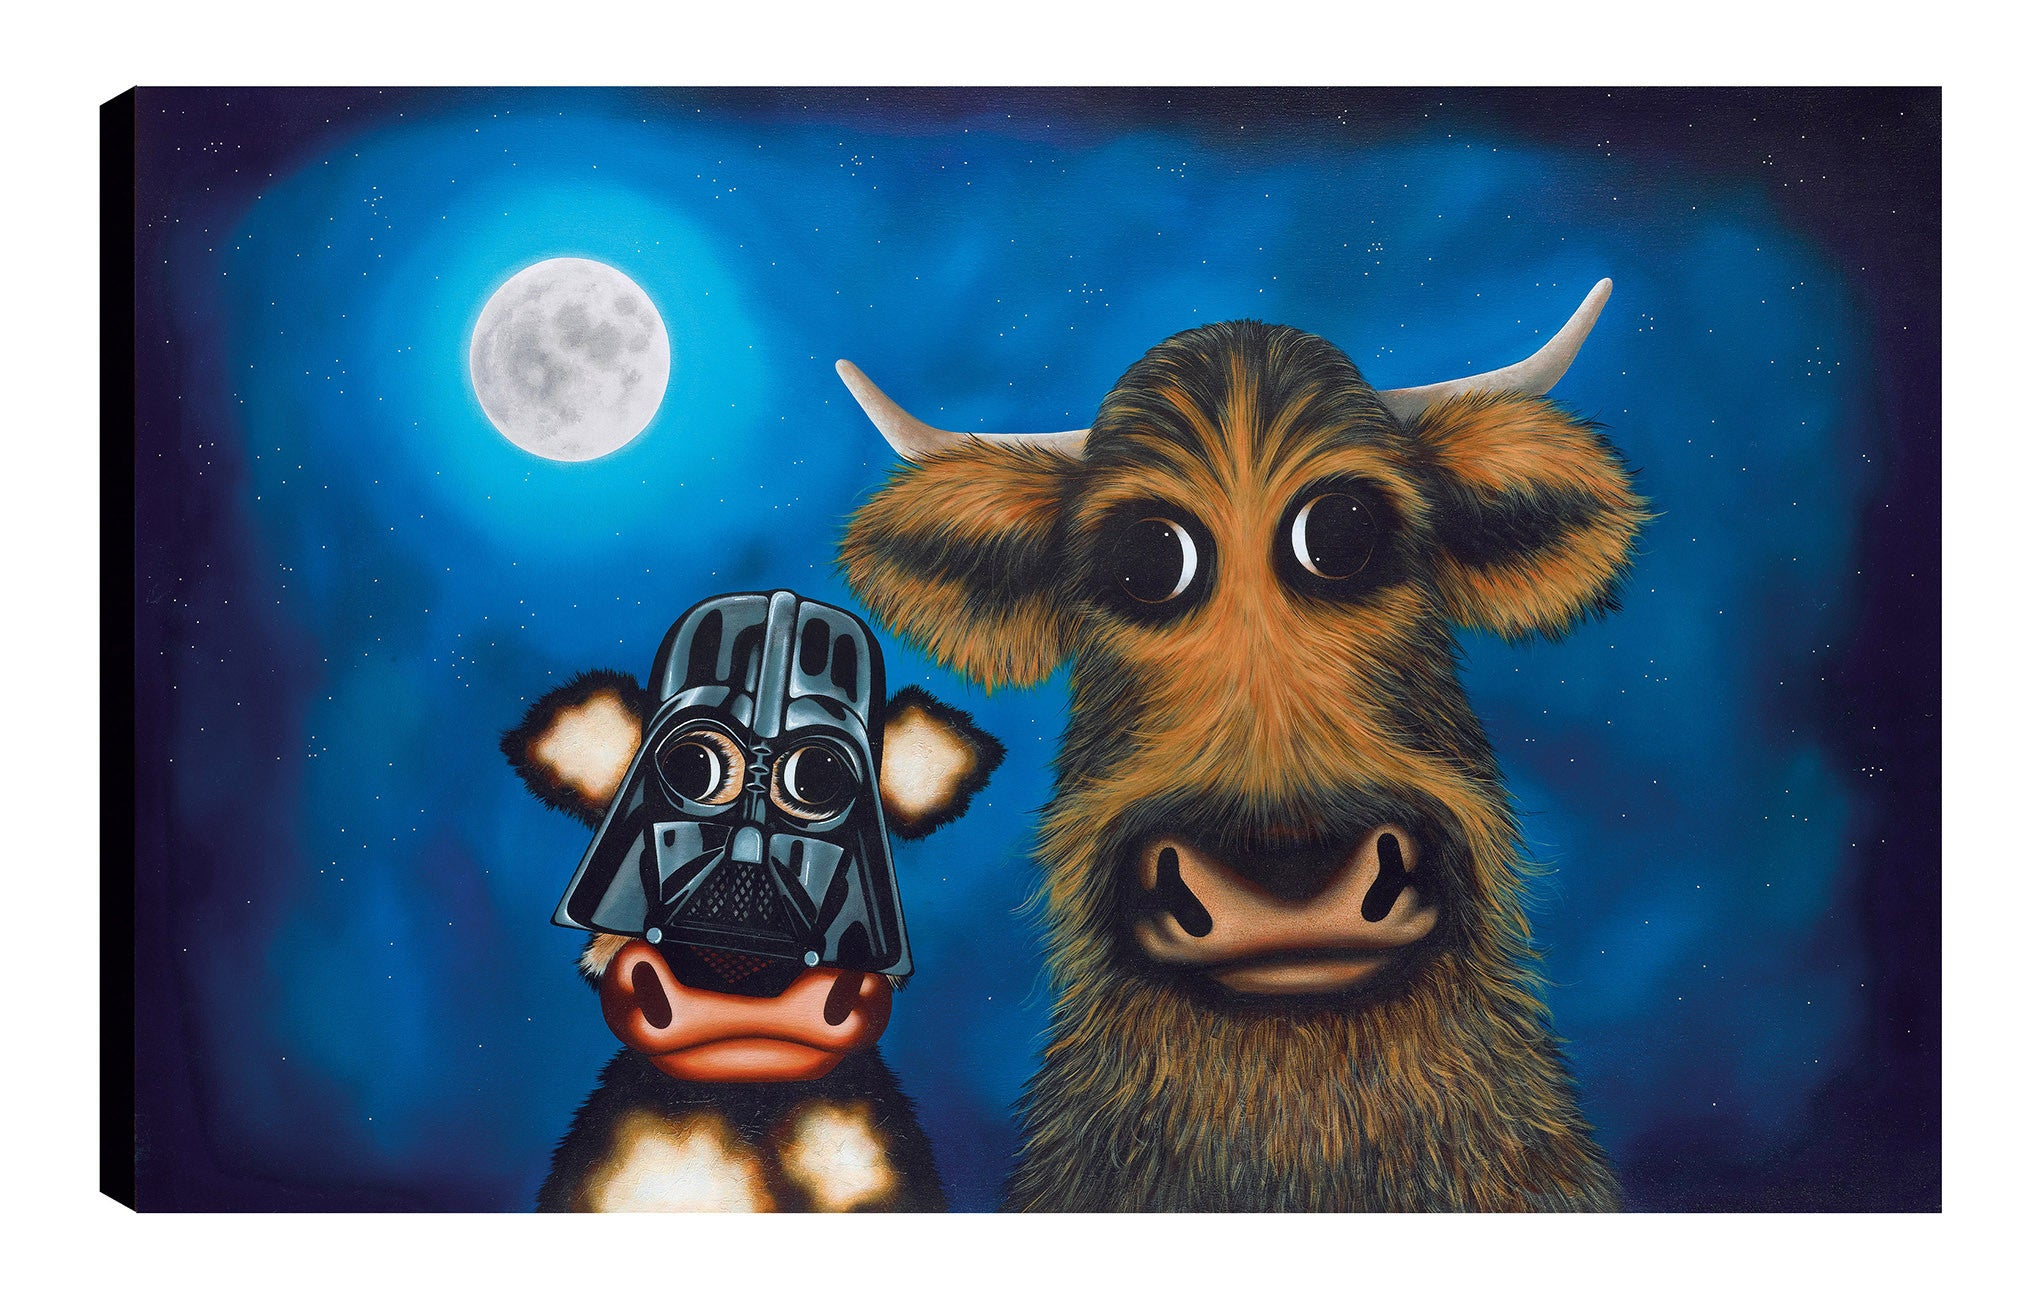 Calf Vader & Chewie the Cud - 2016 - Caroline Shotton - Antidote Art